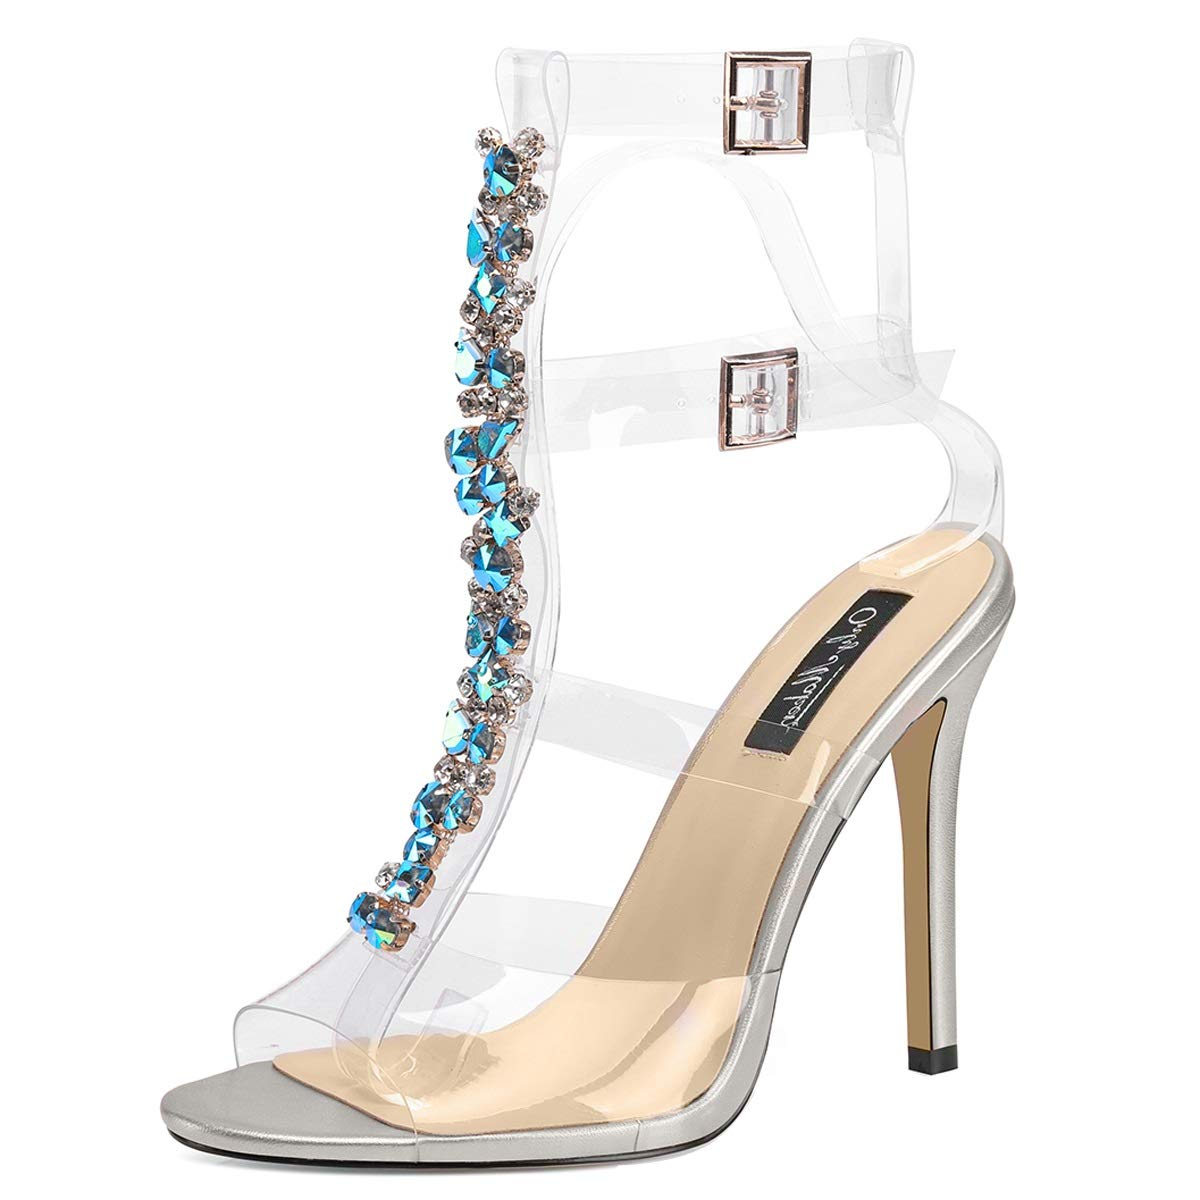 cfa11f386a2c0 onlymaker Women s Clear Turquoise Rhinestones High Heels Gladiator  Transparent Stiletto Ankle Strap Open Toe Sandals Silver 11 M US